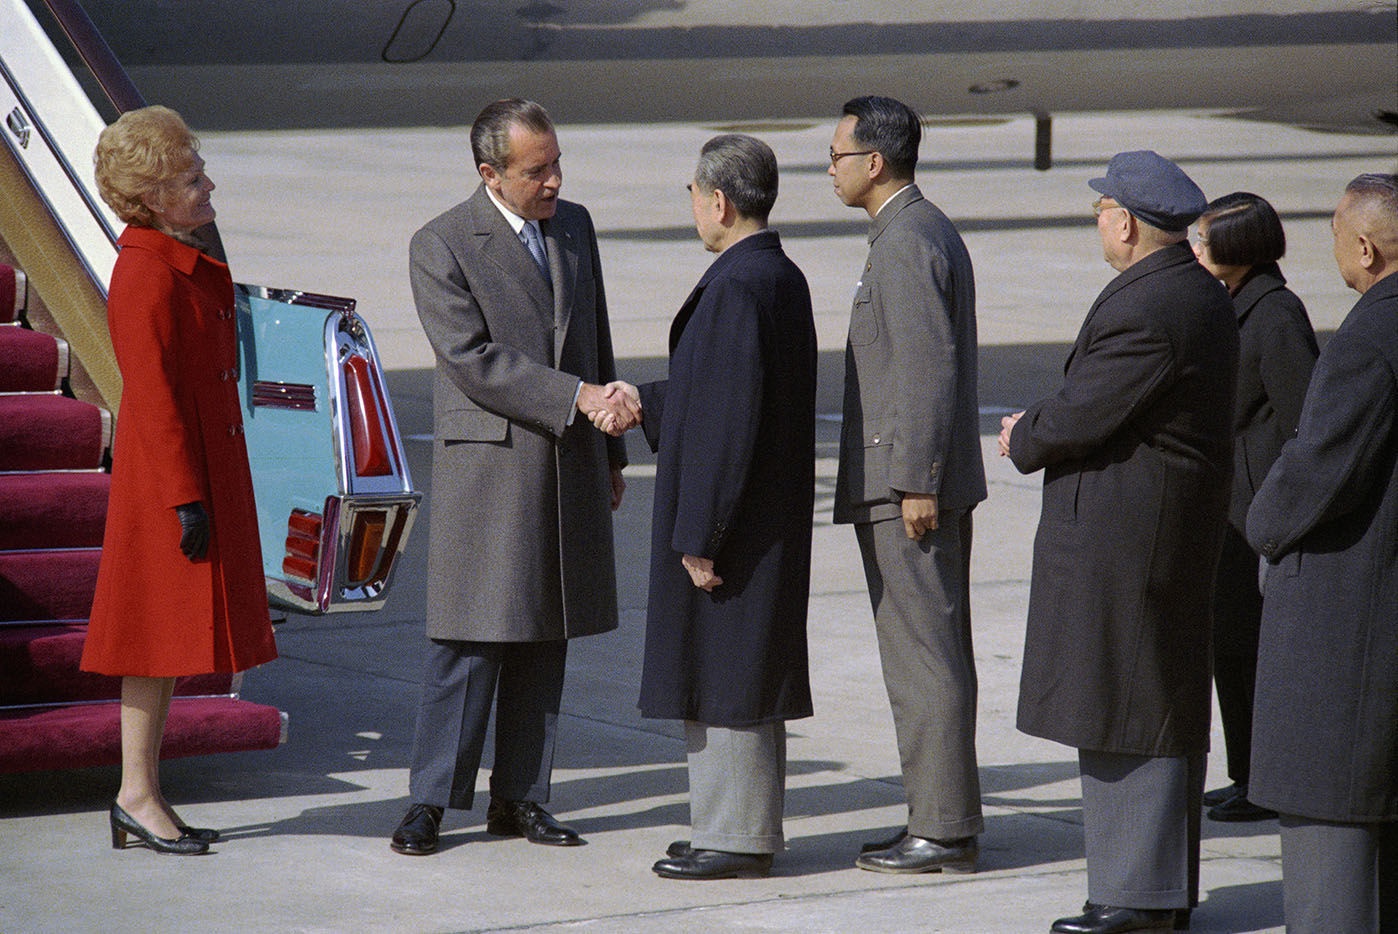 President Nixon shakes hands with Premier Chou En-lai of the People's Republic of China, as Mrs. Nixon looks on